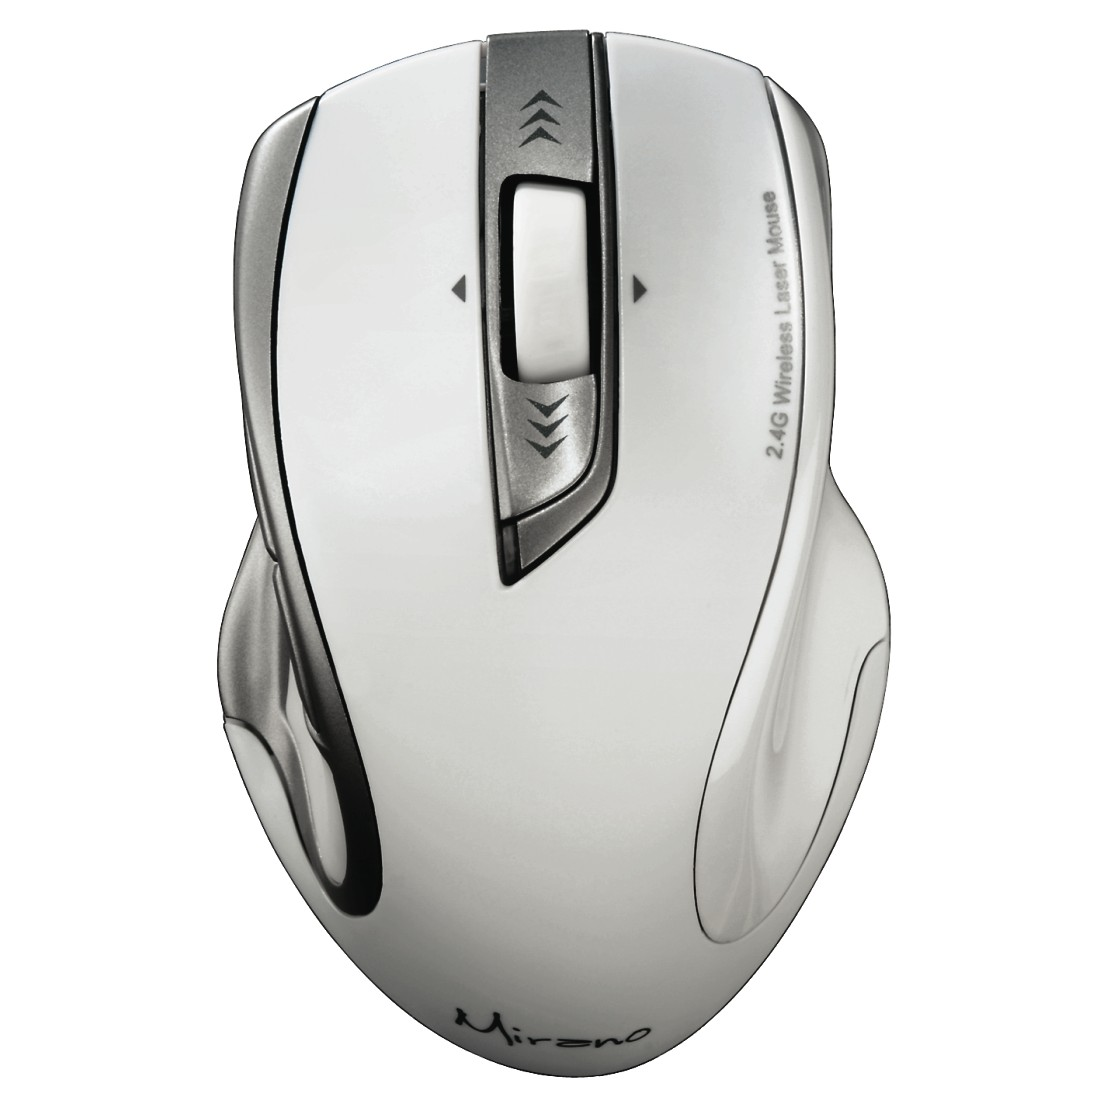 abx3 High-Res Image 3 - Hama, Mirano Wireless Laser Mouse, noiseless, white